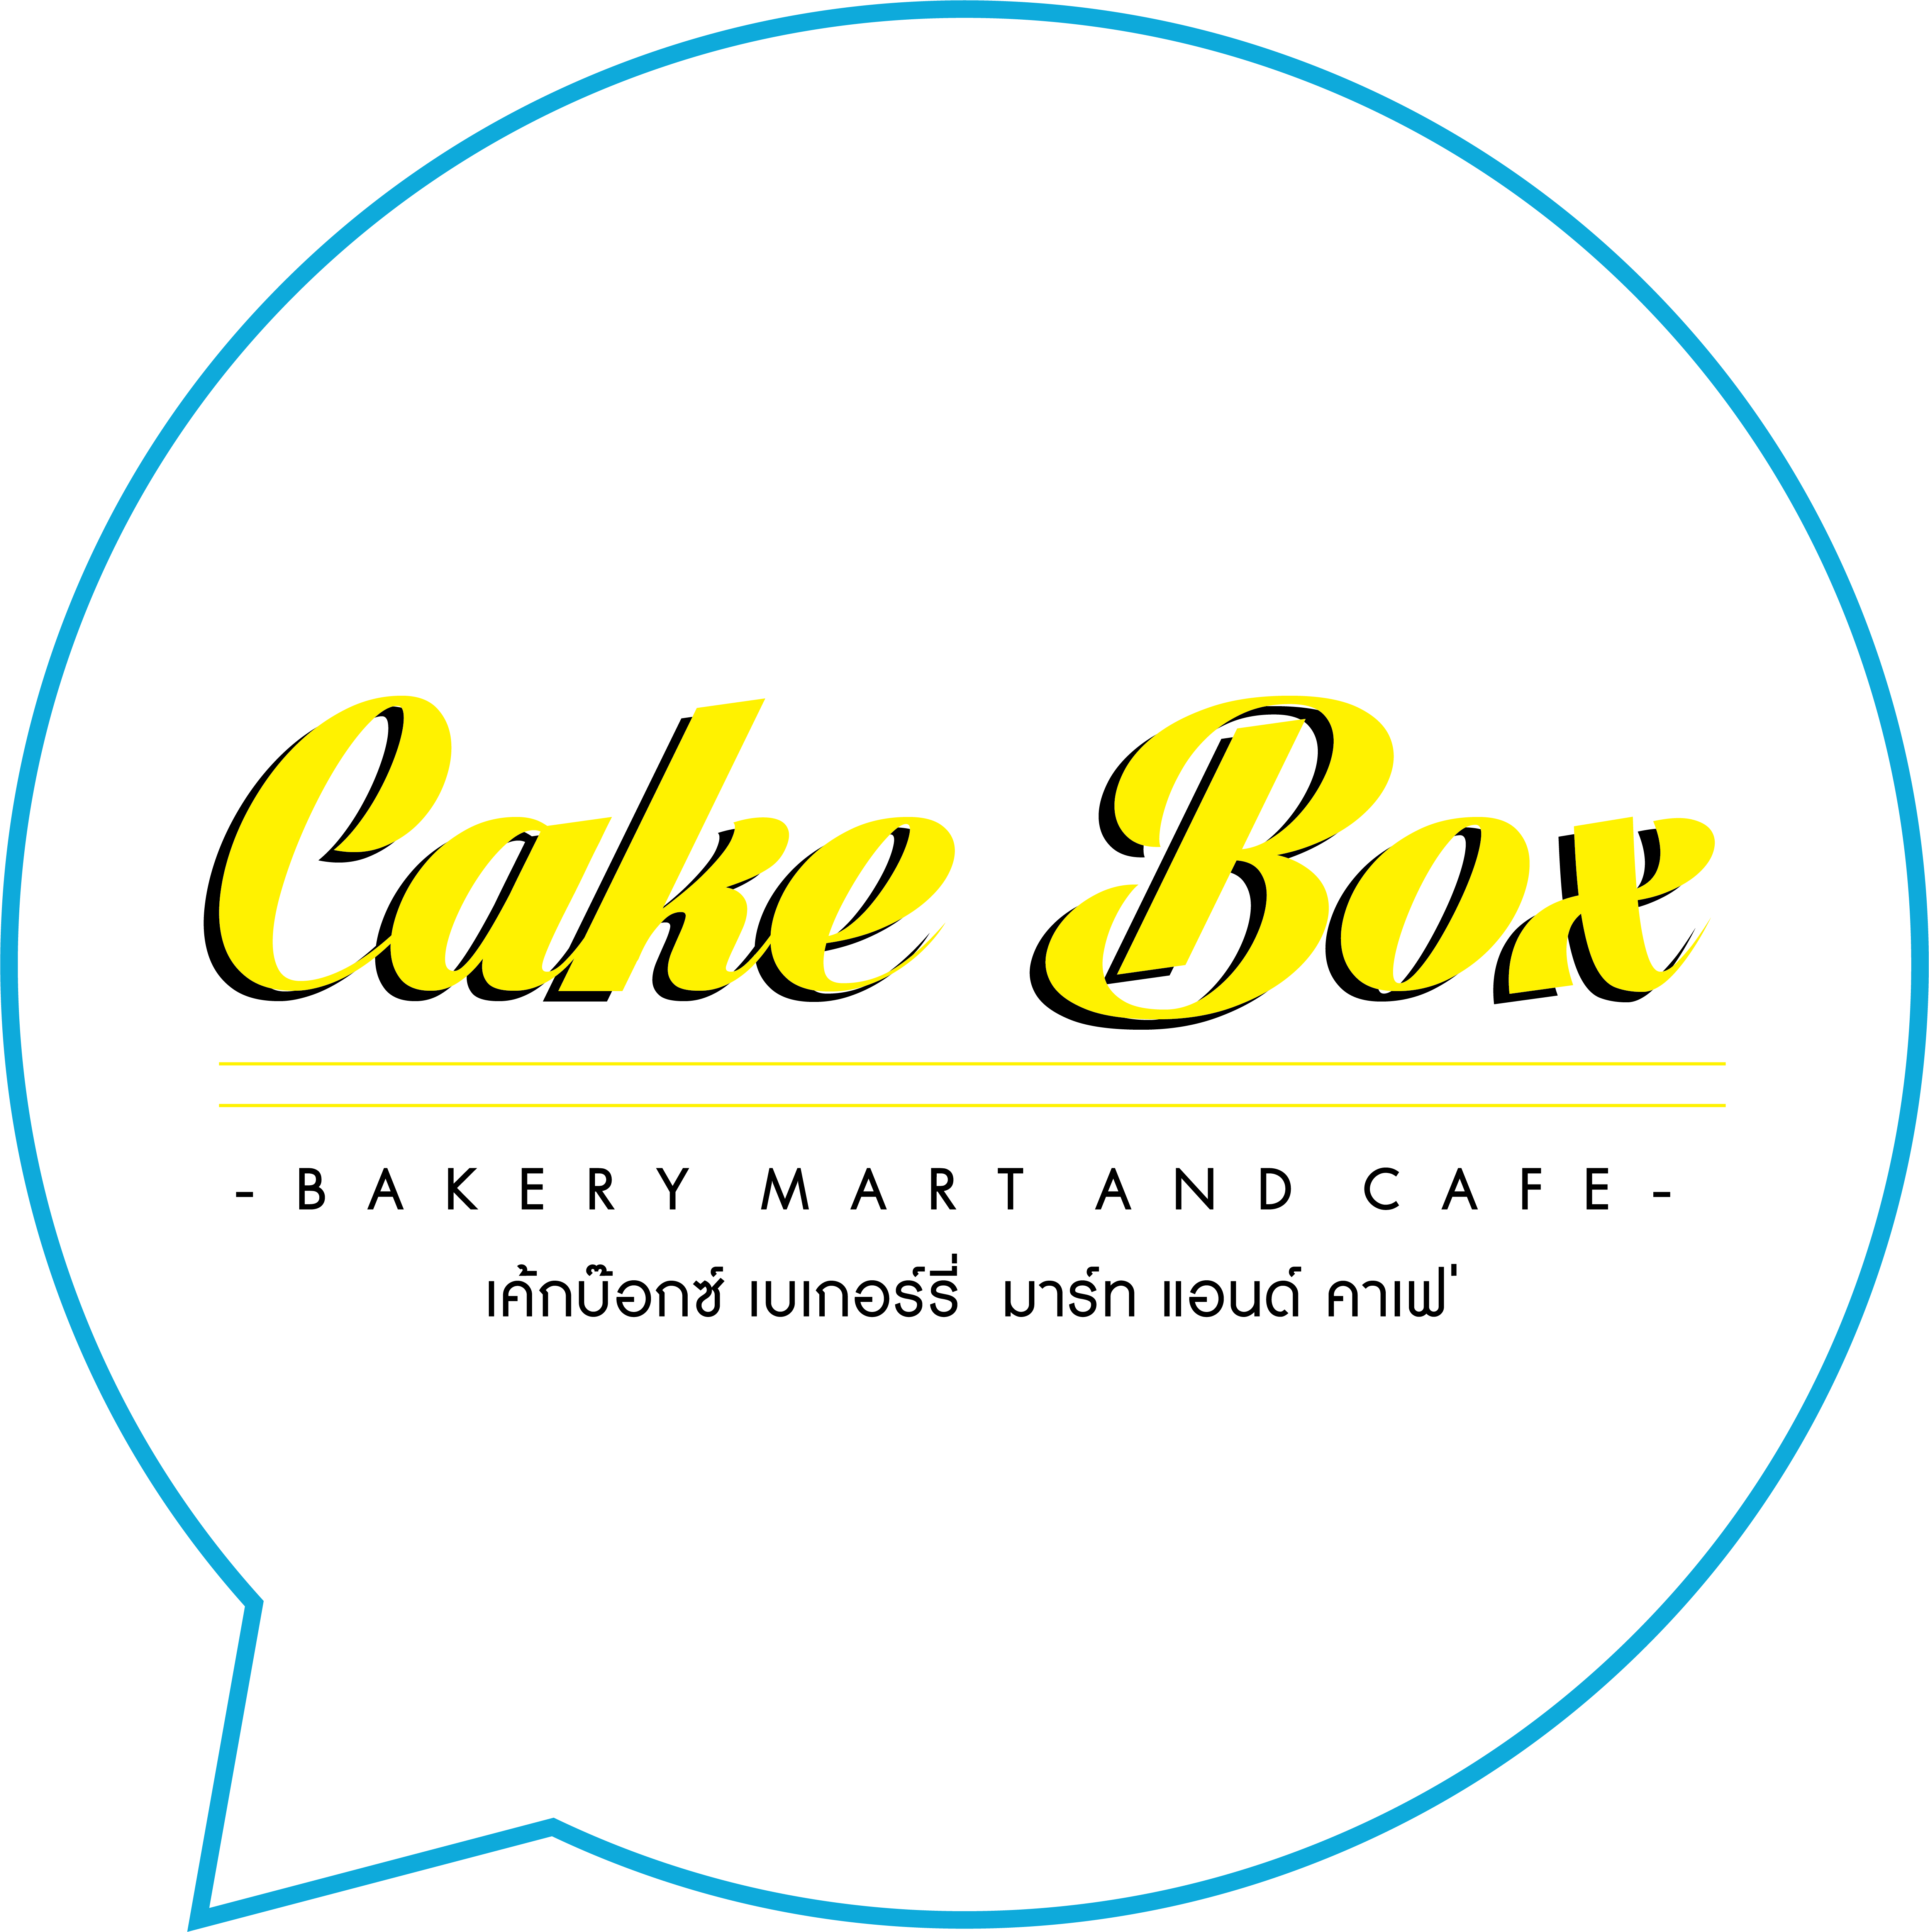 cakebox_logo